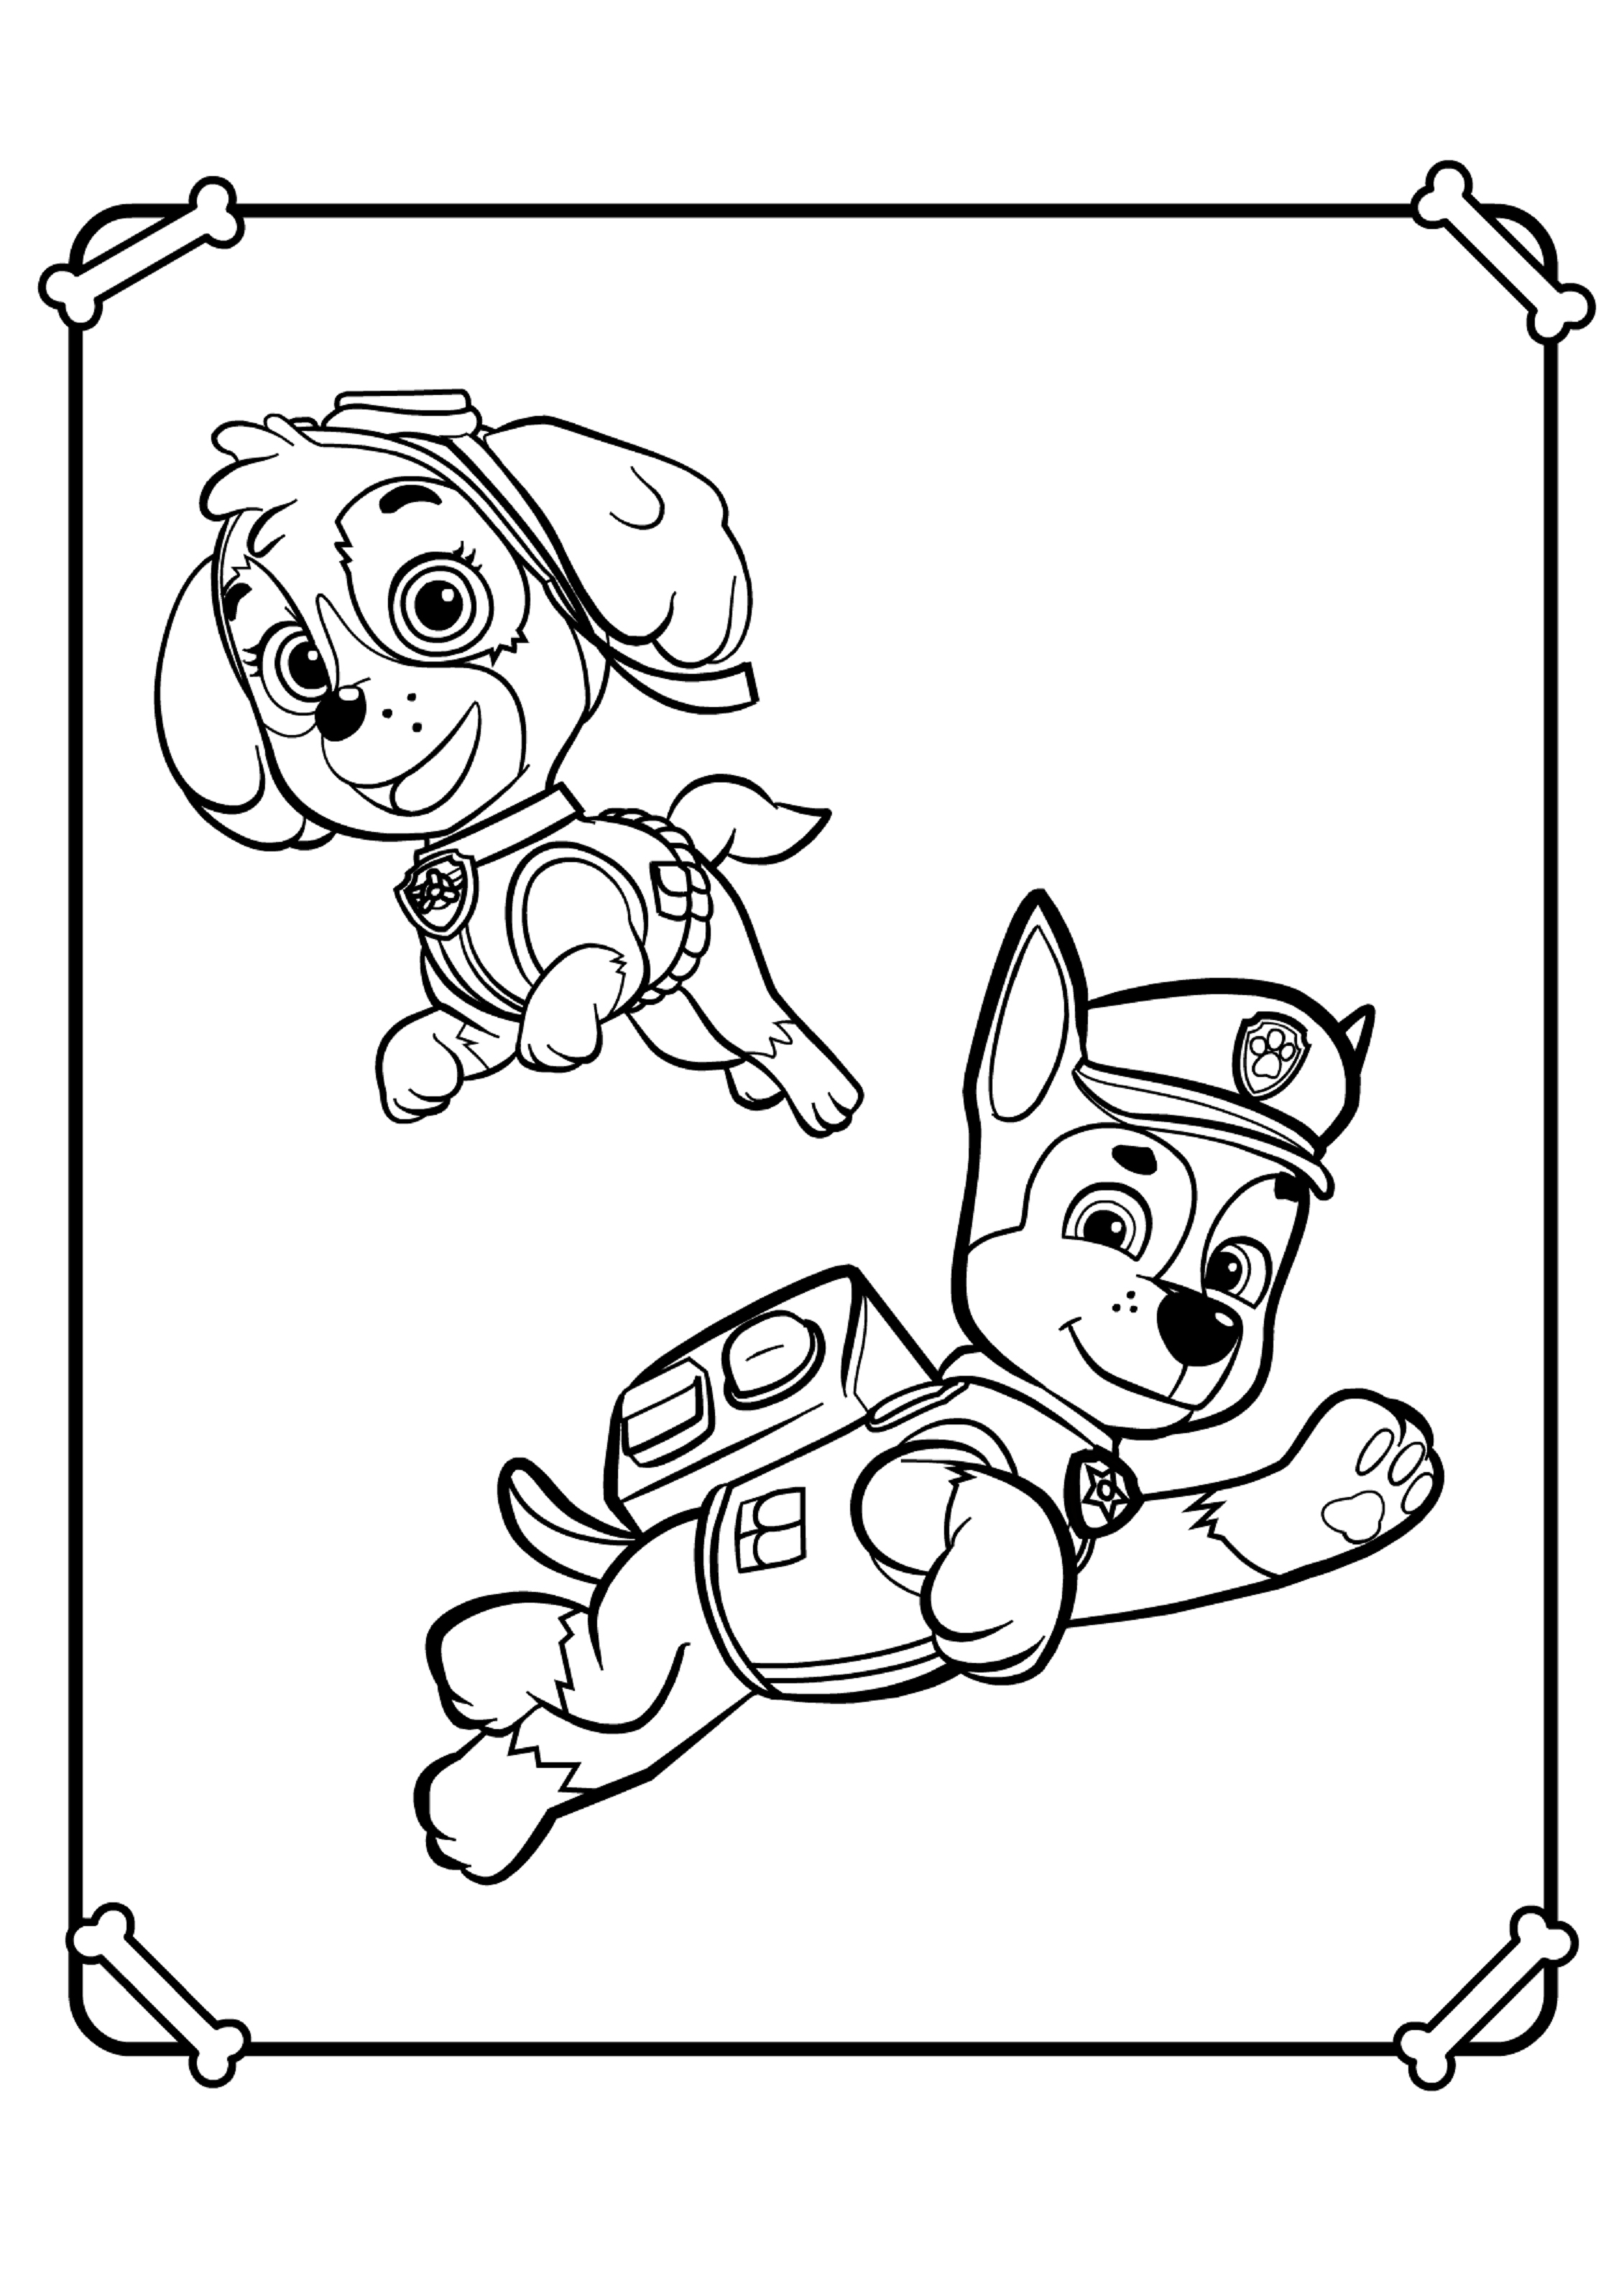 paw patrol chase coloring page chase paw patrol coloring pages download and print chase coloring patrol chase page paw